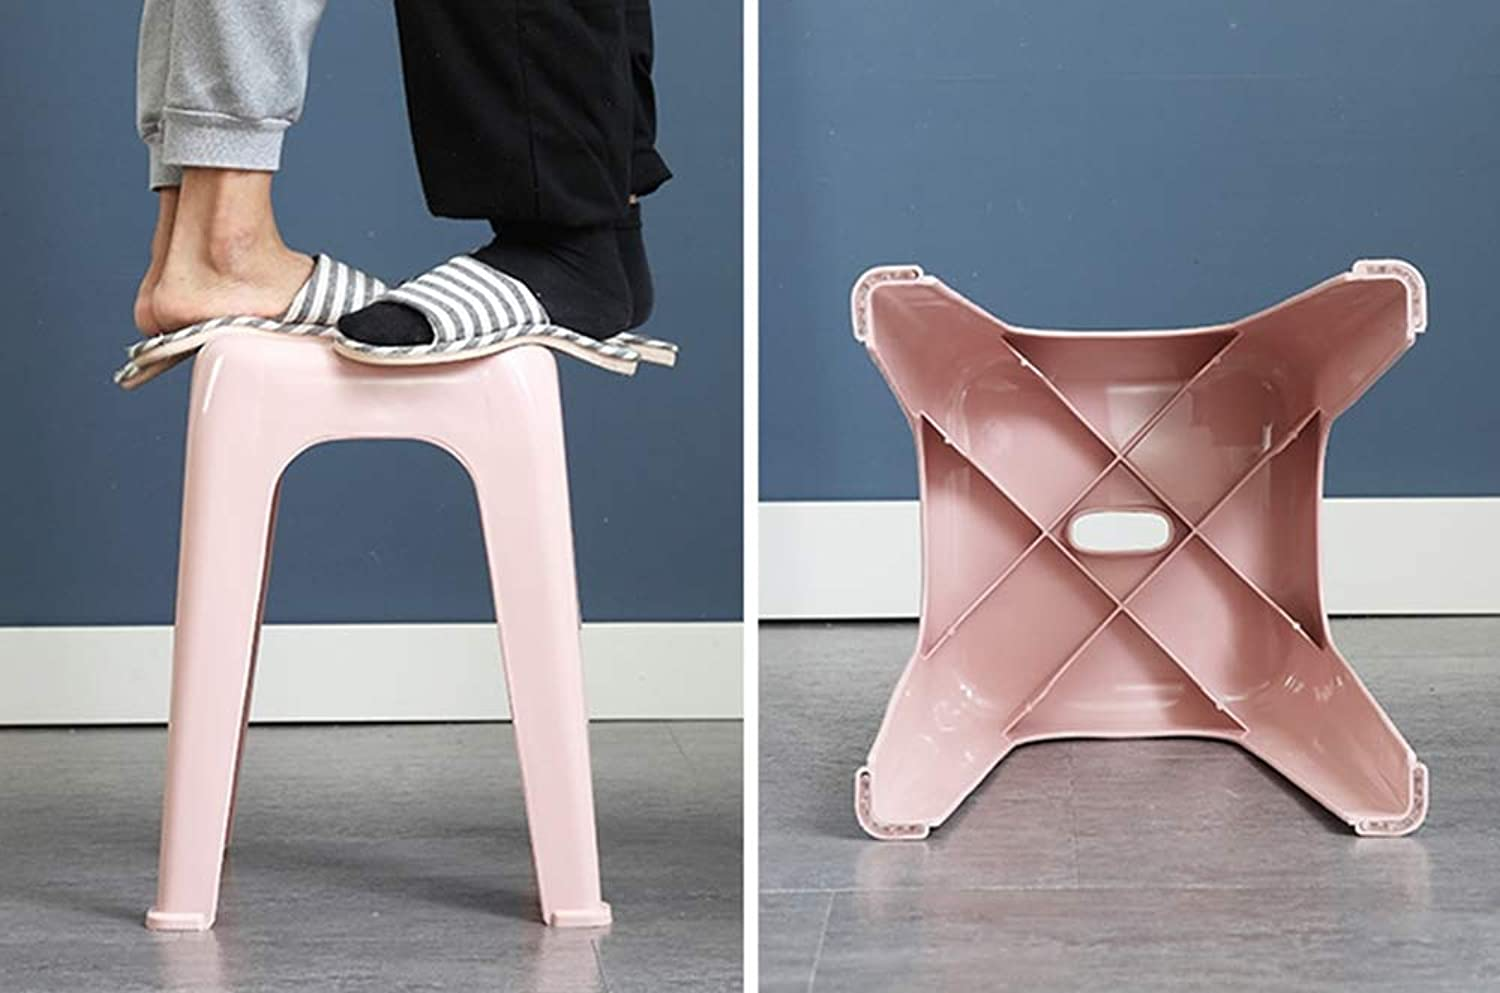 XQY Home Chair Stool Folding Chair-Nordic Plastic Stool Seatathroom Anti-Slip Stool,Home Chairs for Living Room Bedroom and Restaurant,bluee,